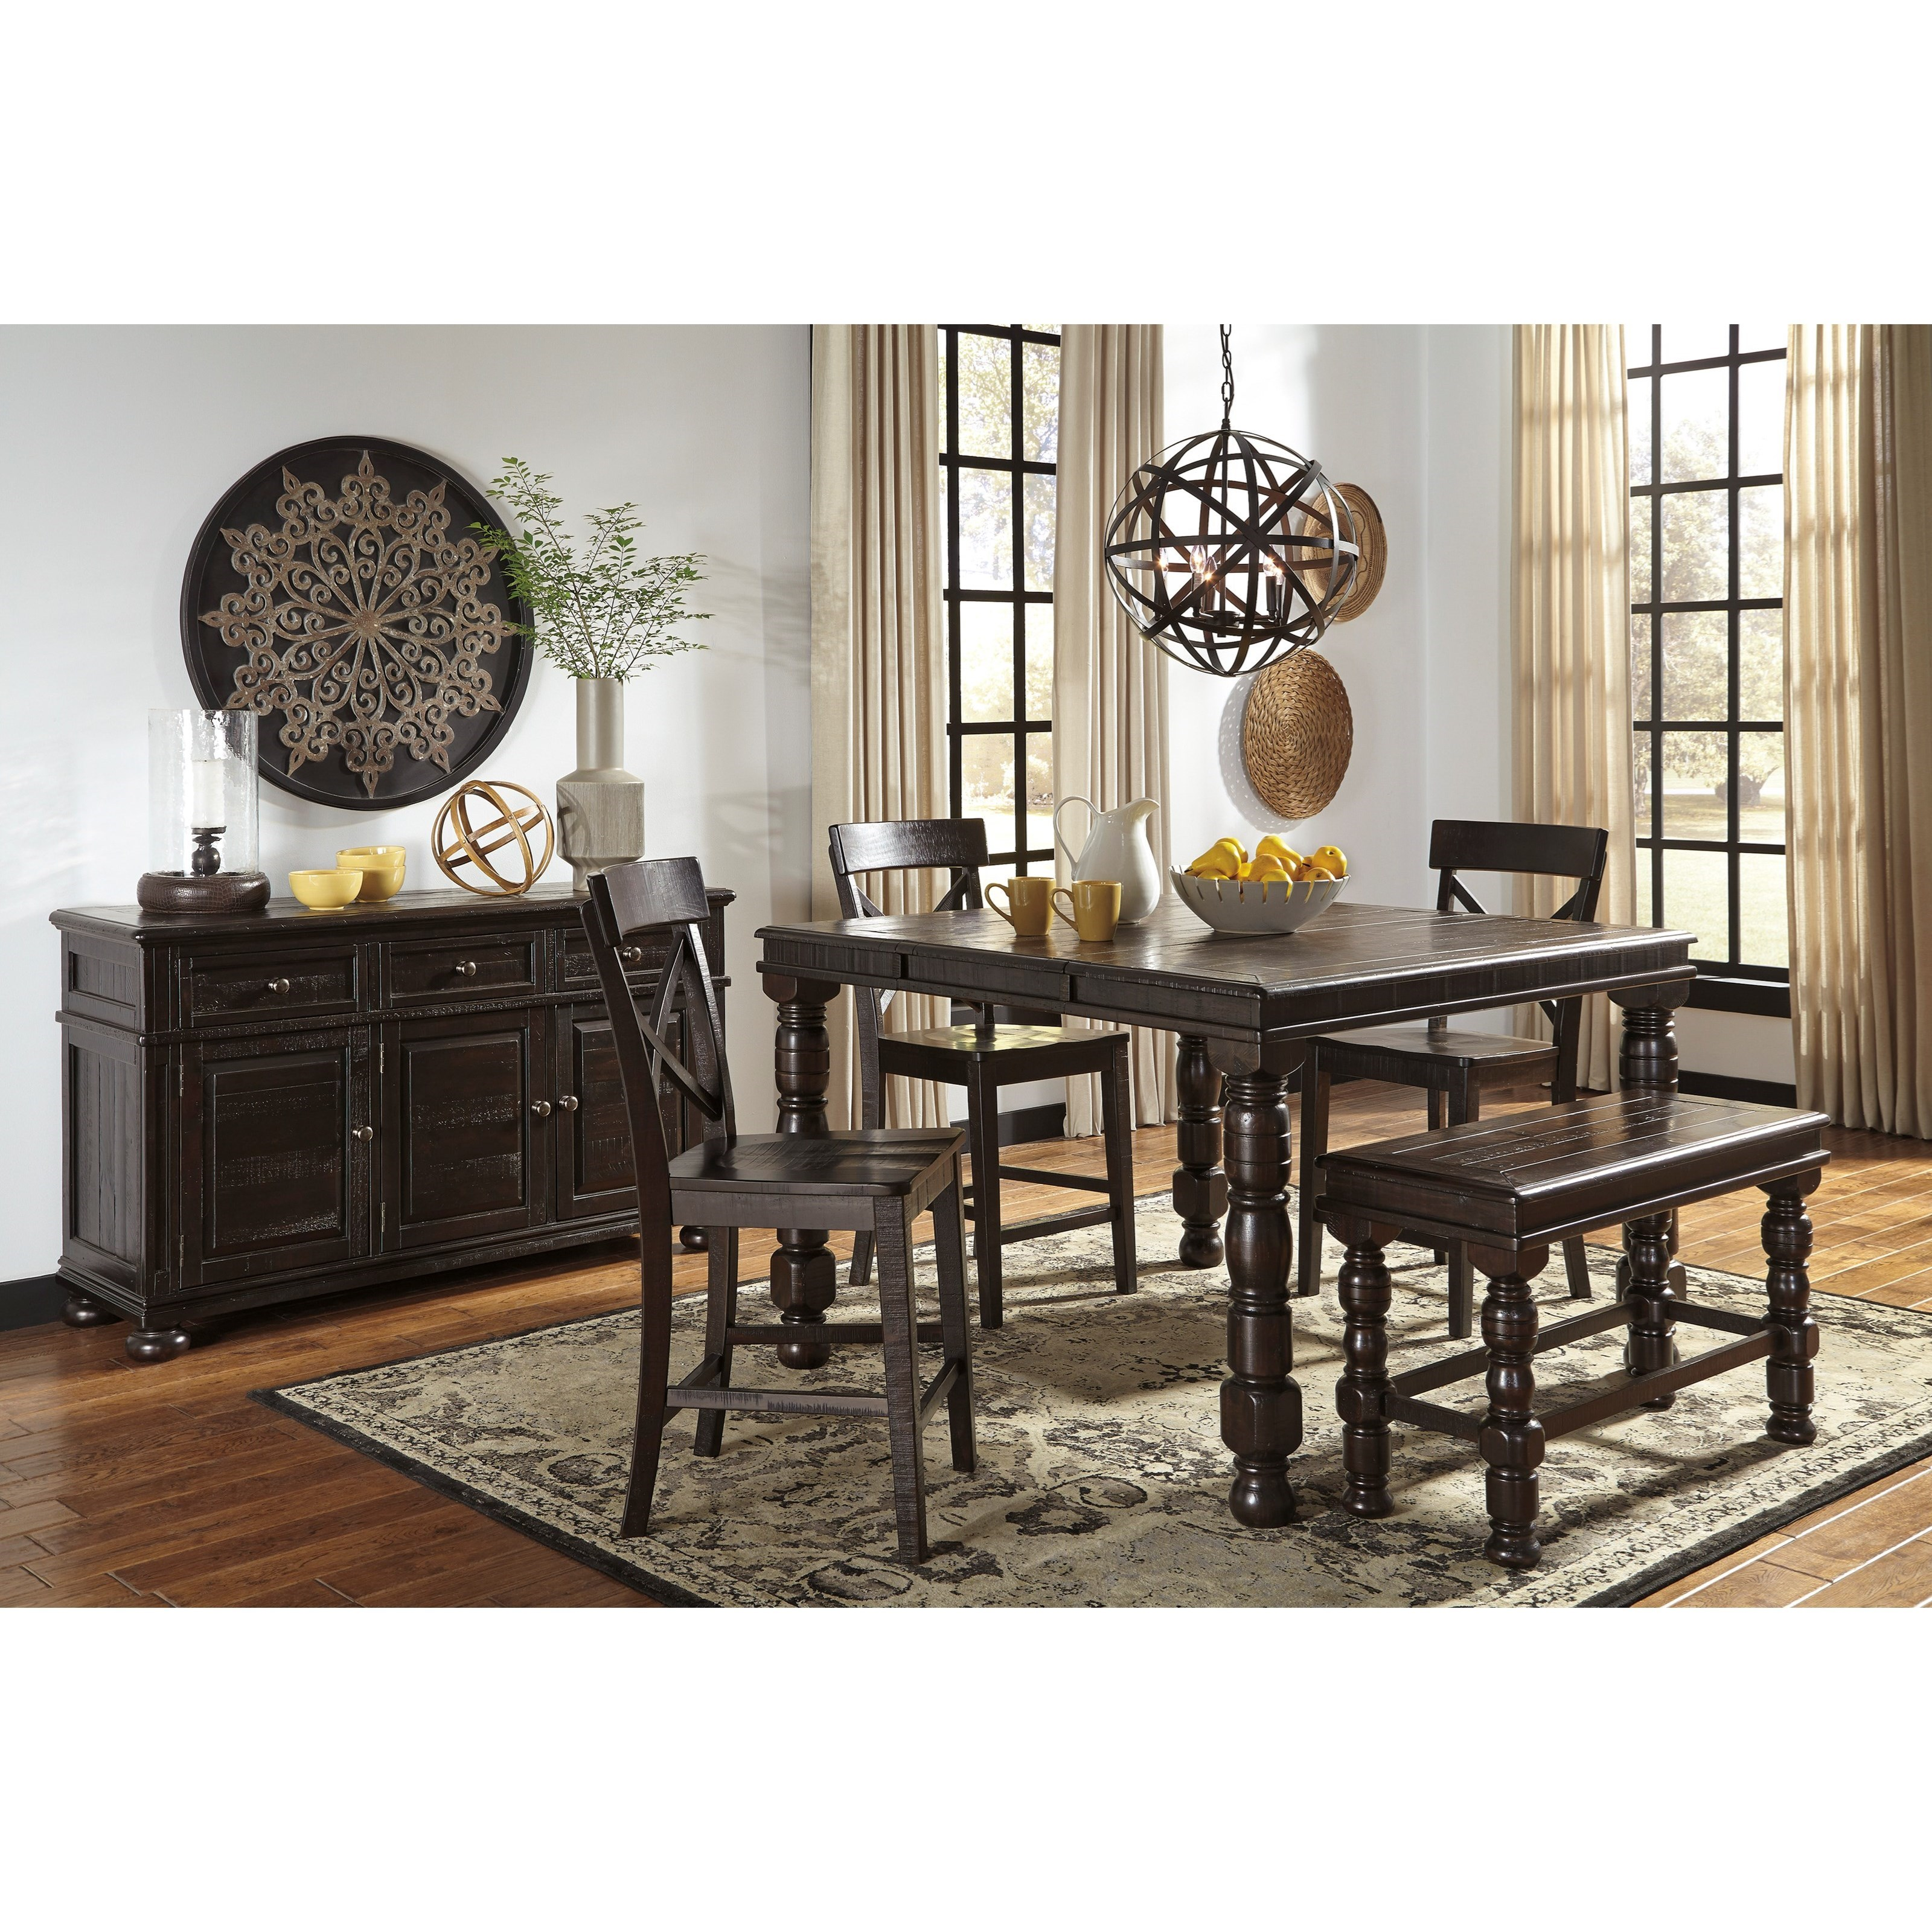 Signature Design by Ashley Gerlane Casual Dining Room Group - Item Number: D657 Dining Room Group 7